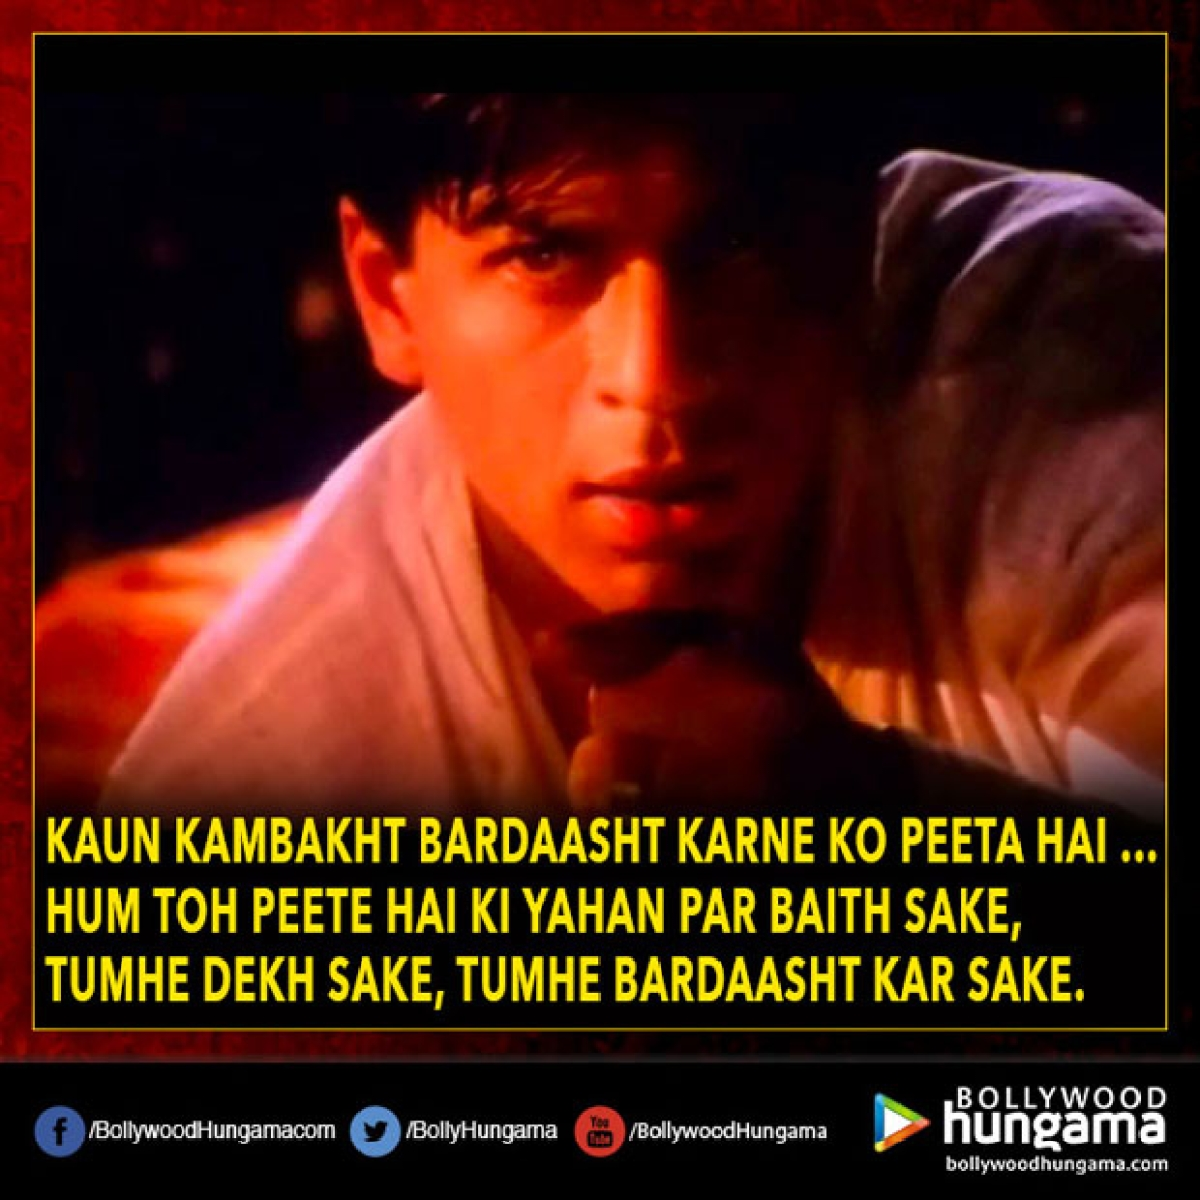 These 25 dialogues of Shah Rukh Khan will make you look back into his 25 years of journey